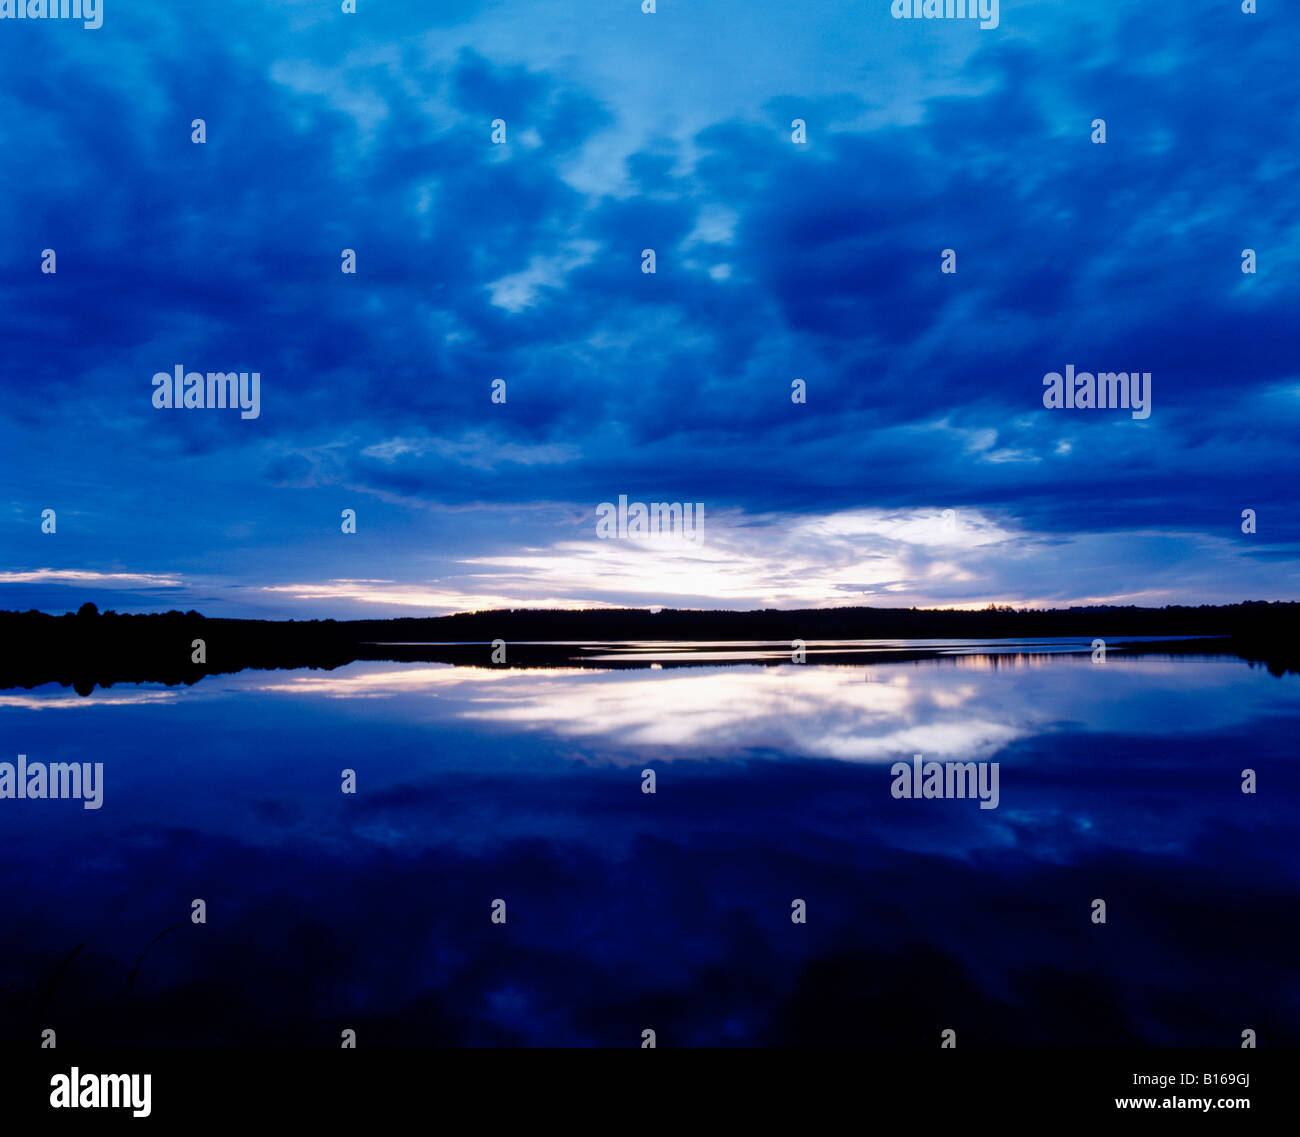 Lower Lough Erne, Co Fermanagh, Ireland - Stock Image